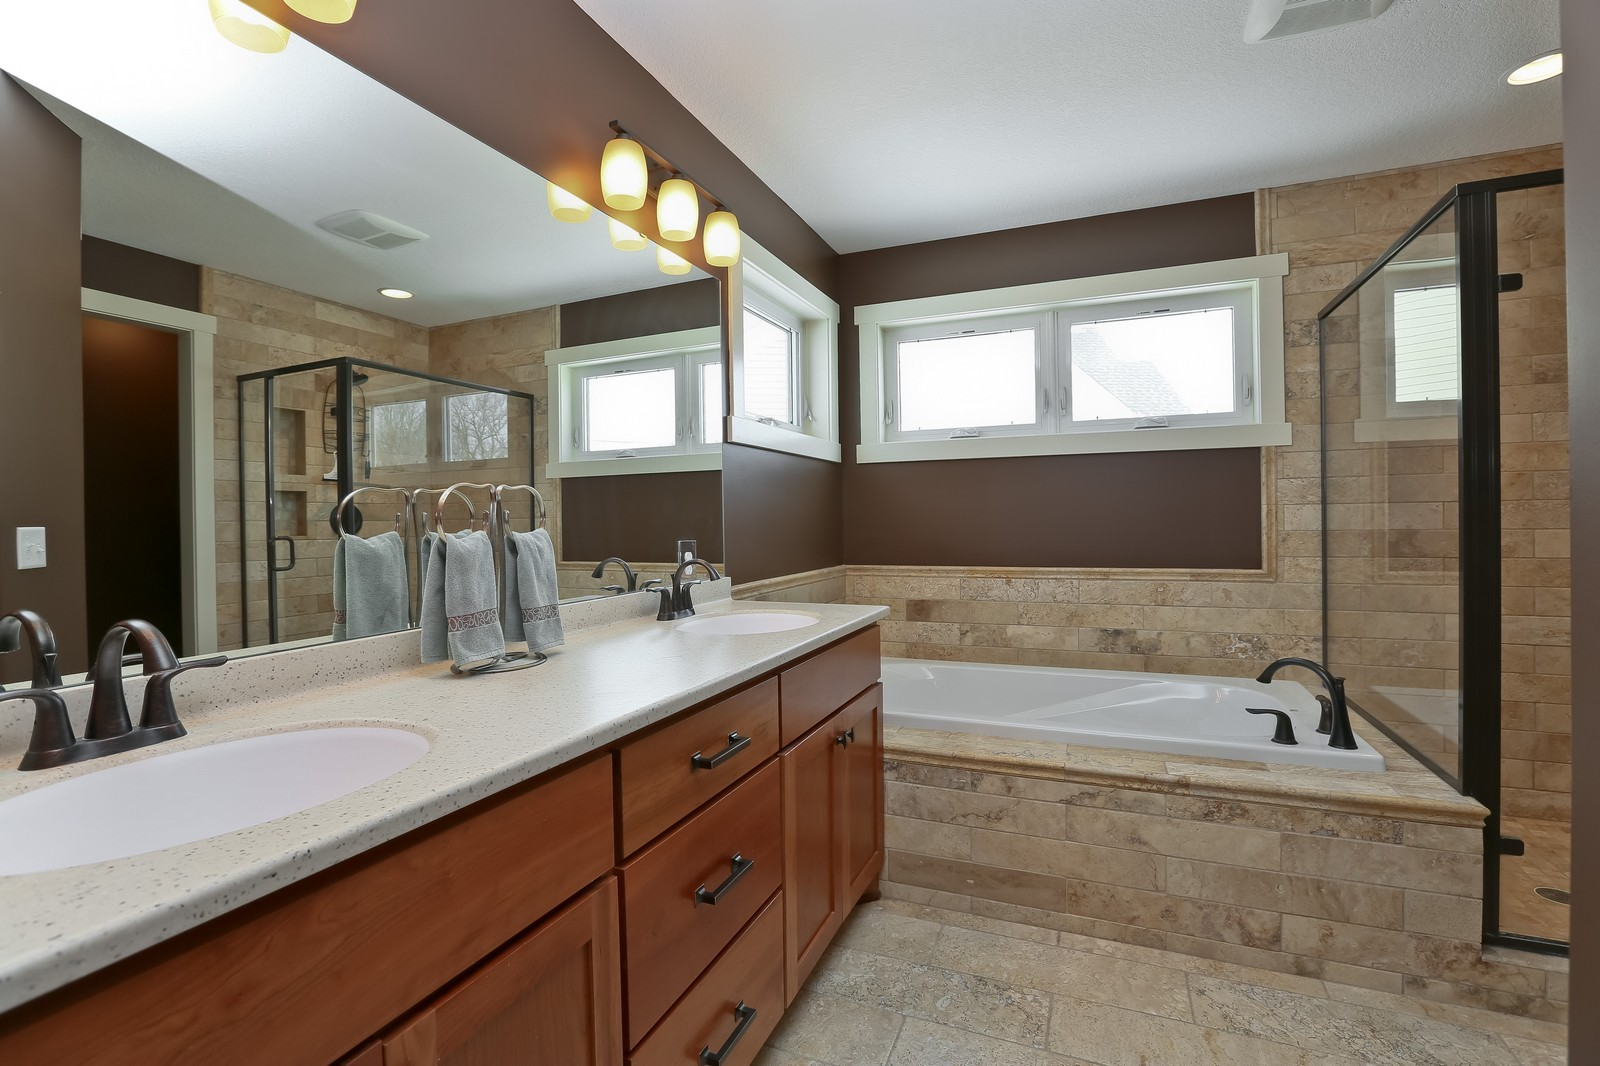 Real Estate Photography - 859 Fox Rd, Lino Lakes, MN, 55014 - Master Bathroom